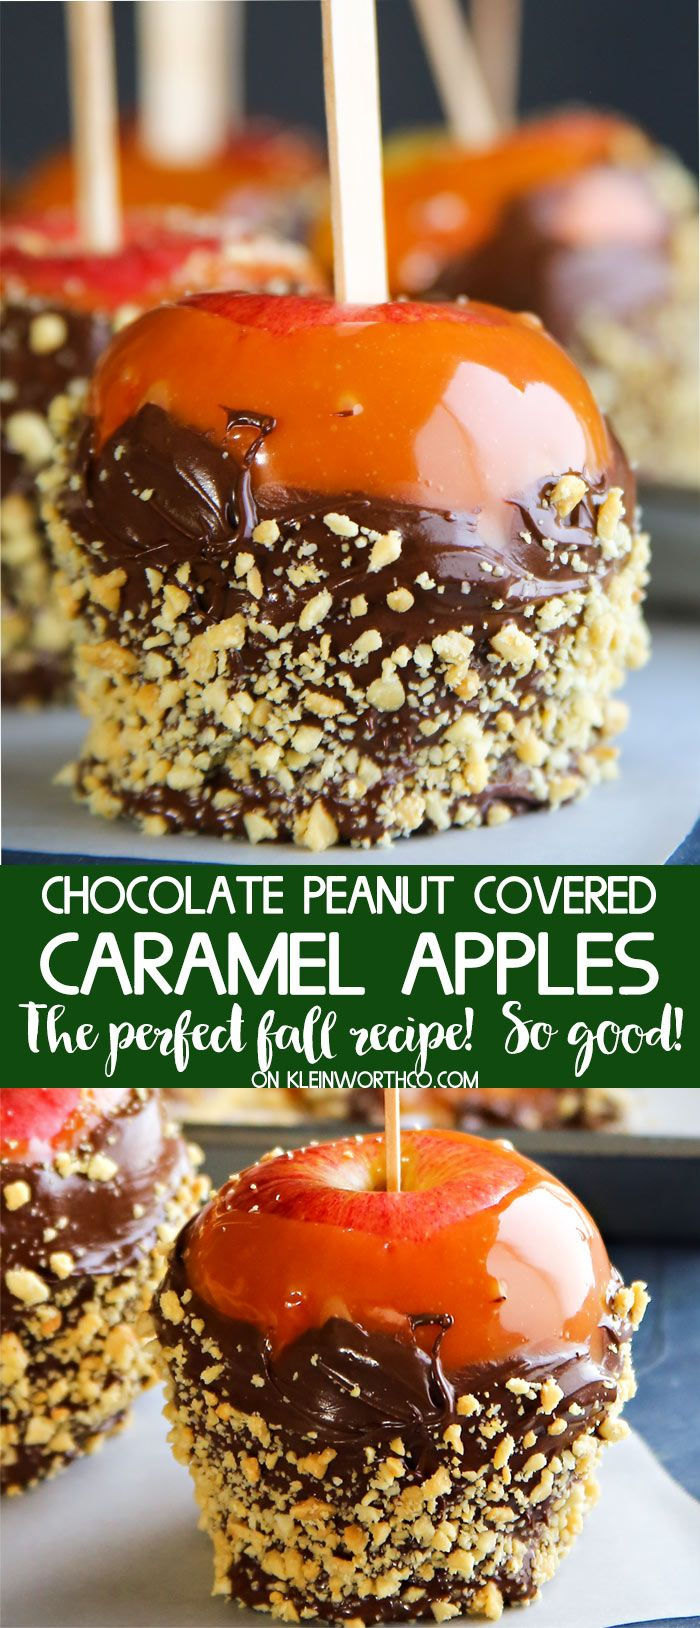 Chocolate Peanut Covered Caramel Apples with the best homemade caramel, chocolate & peanuts makes these the best fall dessert around. YUM caramel lovers. via @KleinworthCo